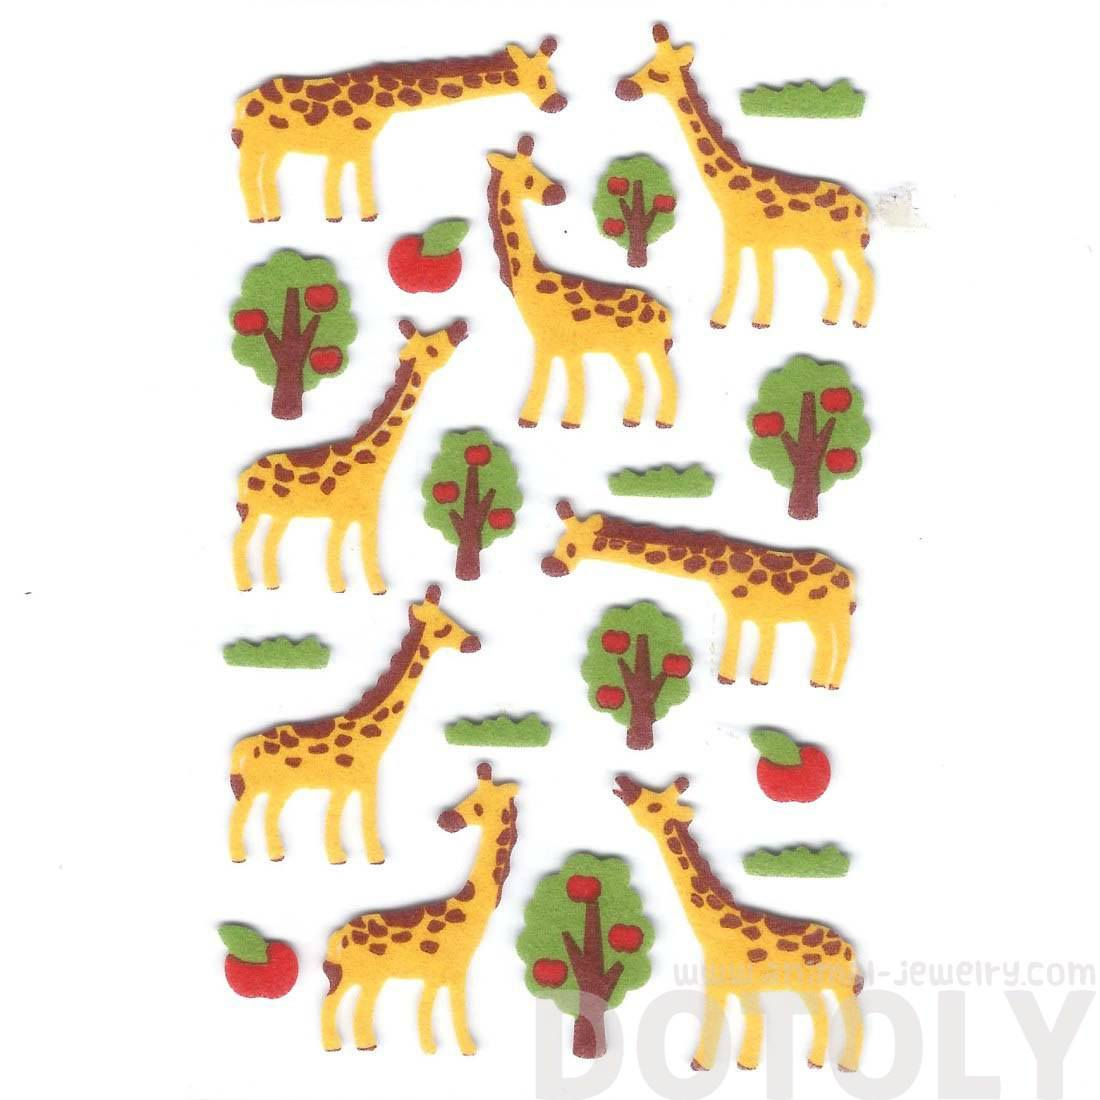 Cute Giraffe Shaped Animal Themed Felt Stickers for Scrapbooking